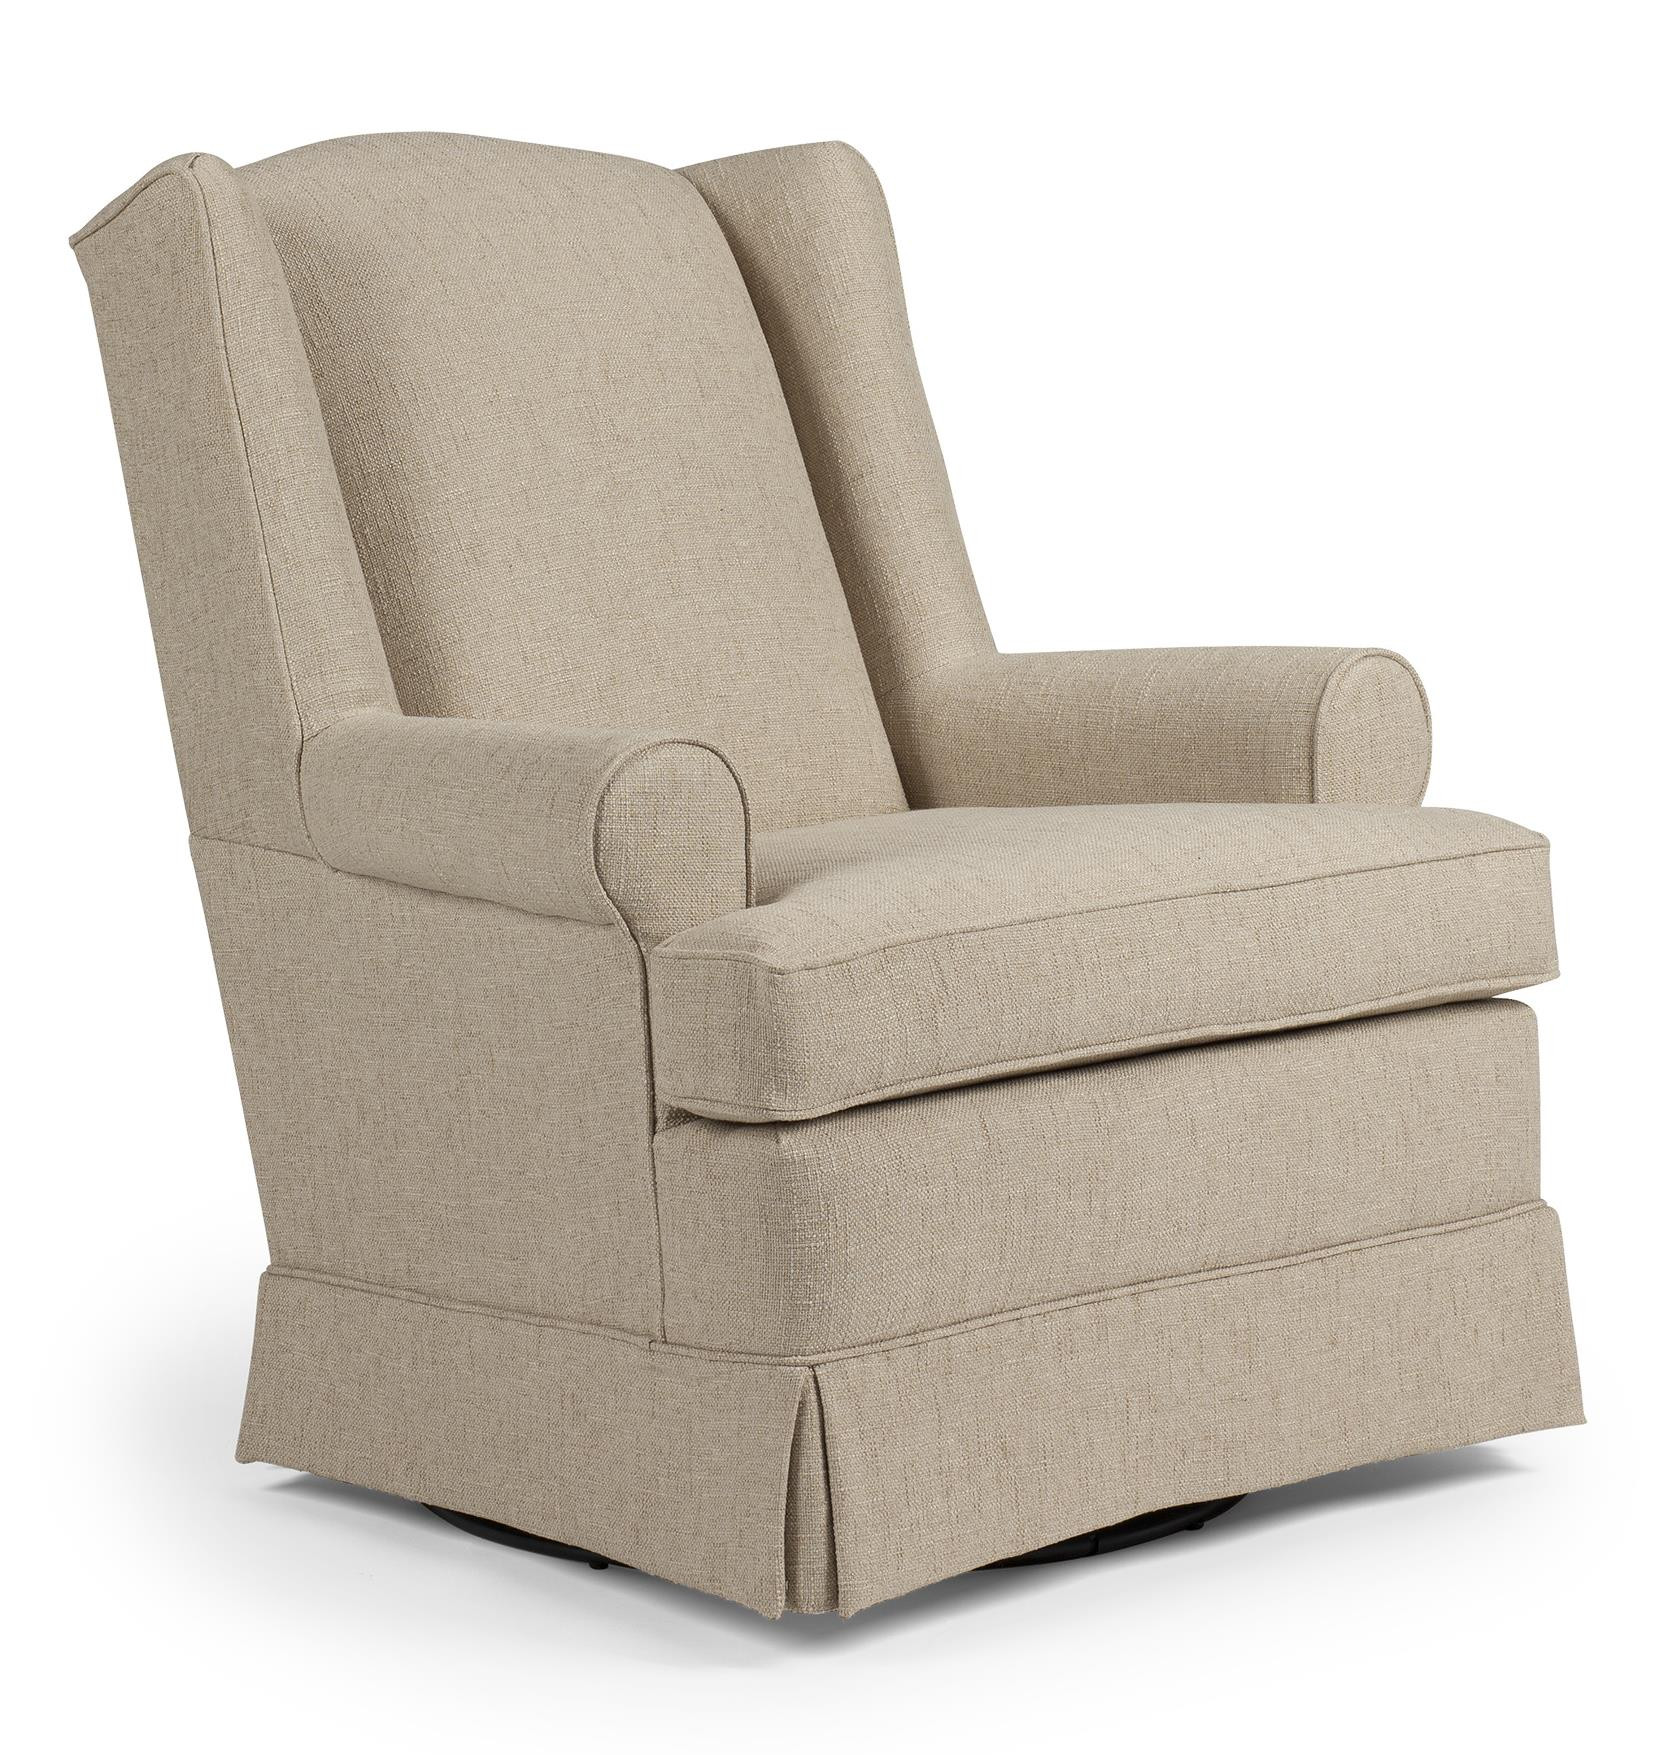 Best ideas about Swivel Glider Chair . Save or Pin Roni Skirted Swivel Glider Chair by Best Home Furnishings Now.